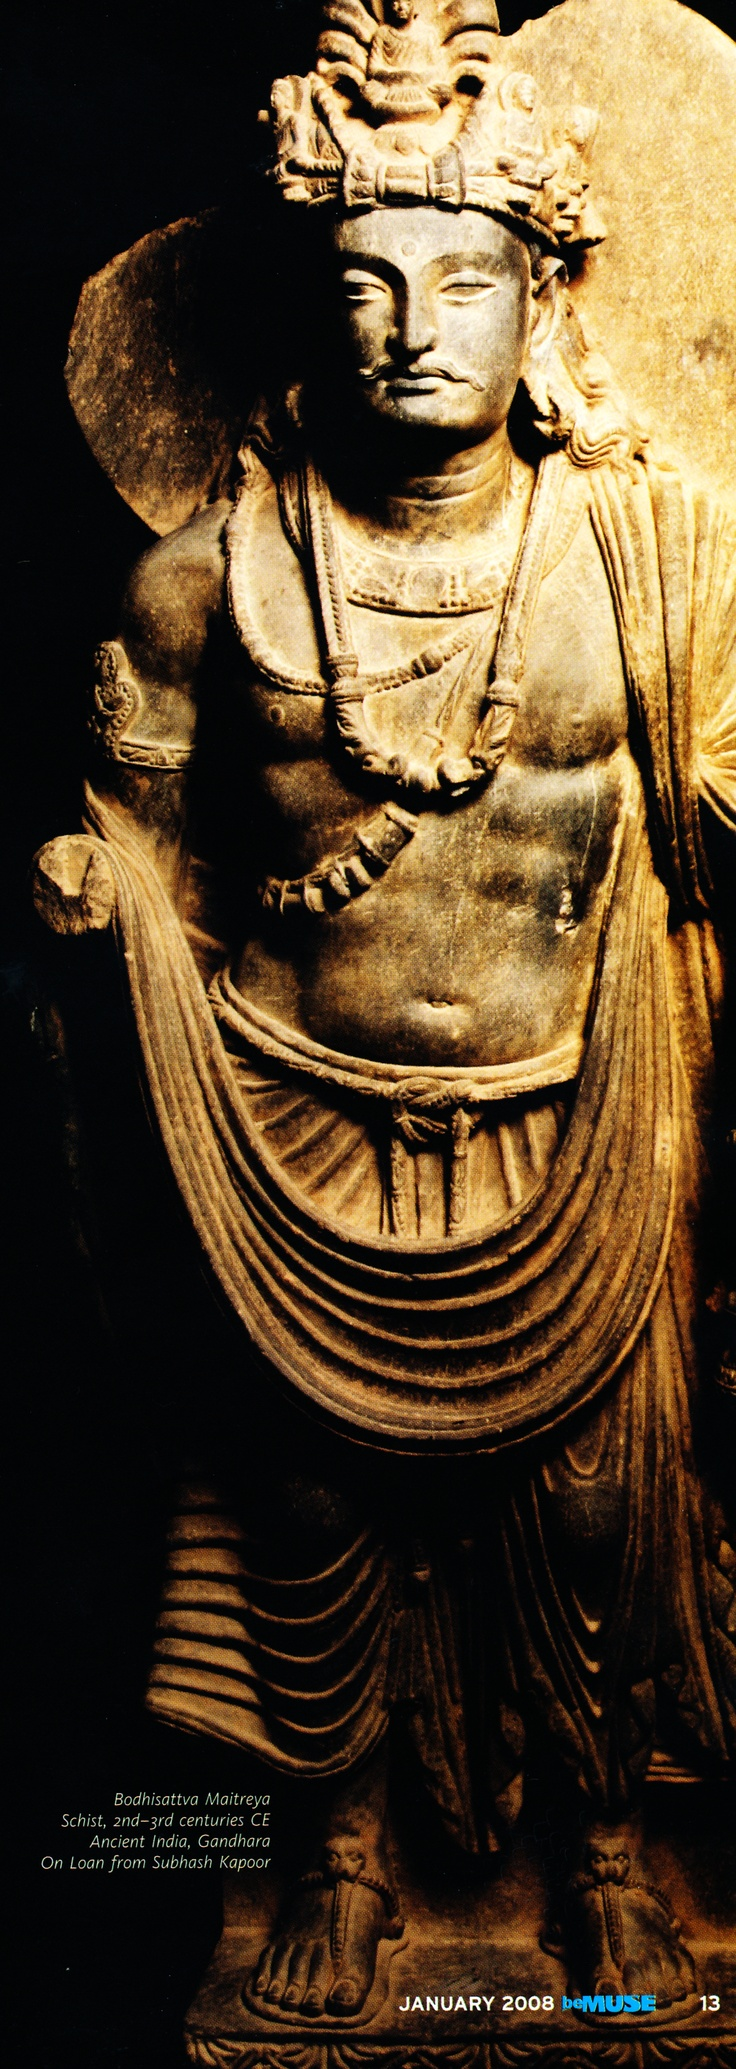 Maitreya Buddha, 2nd Century CE, Ancient India, Gandhara Civilization.   Credit: On The Nalanda Trail exhibition, Singapore. - Greco-Buddhist art